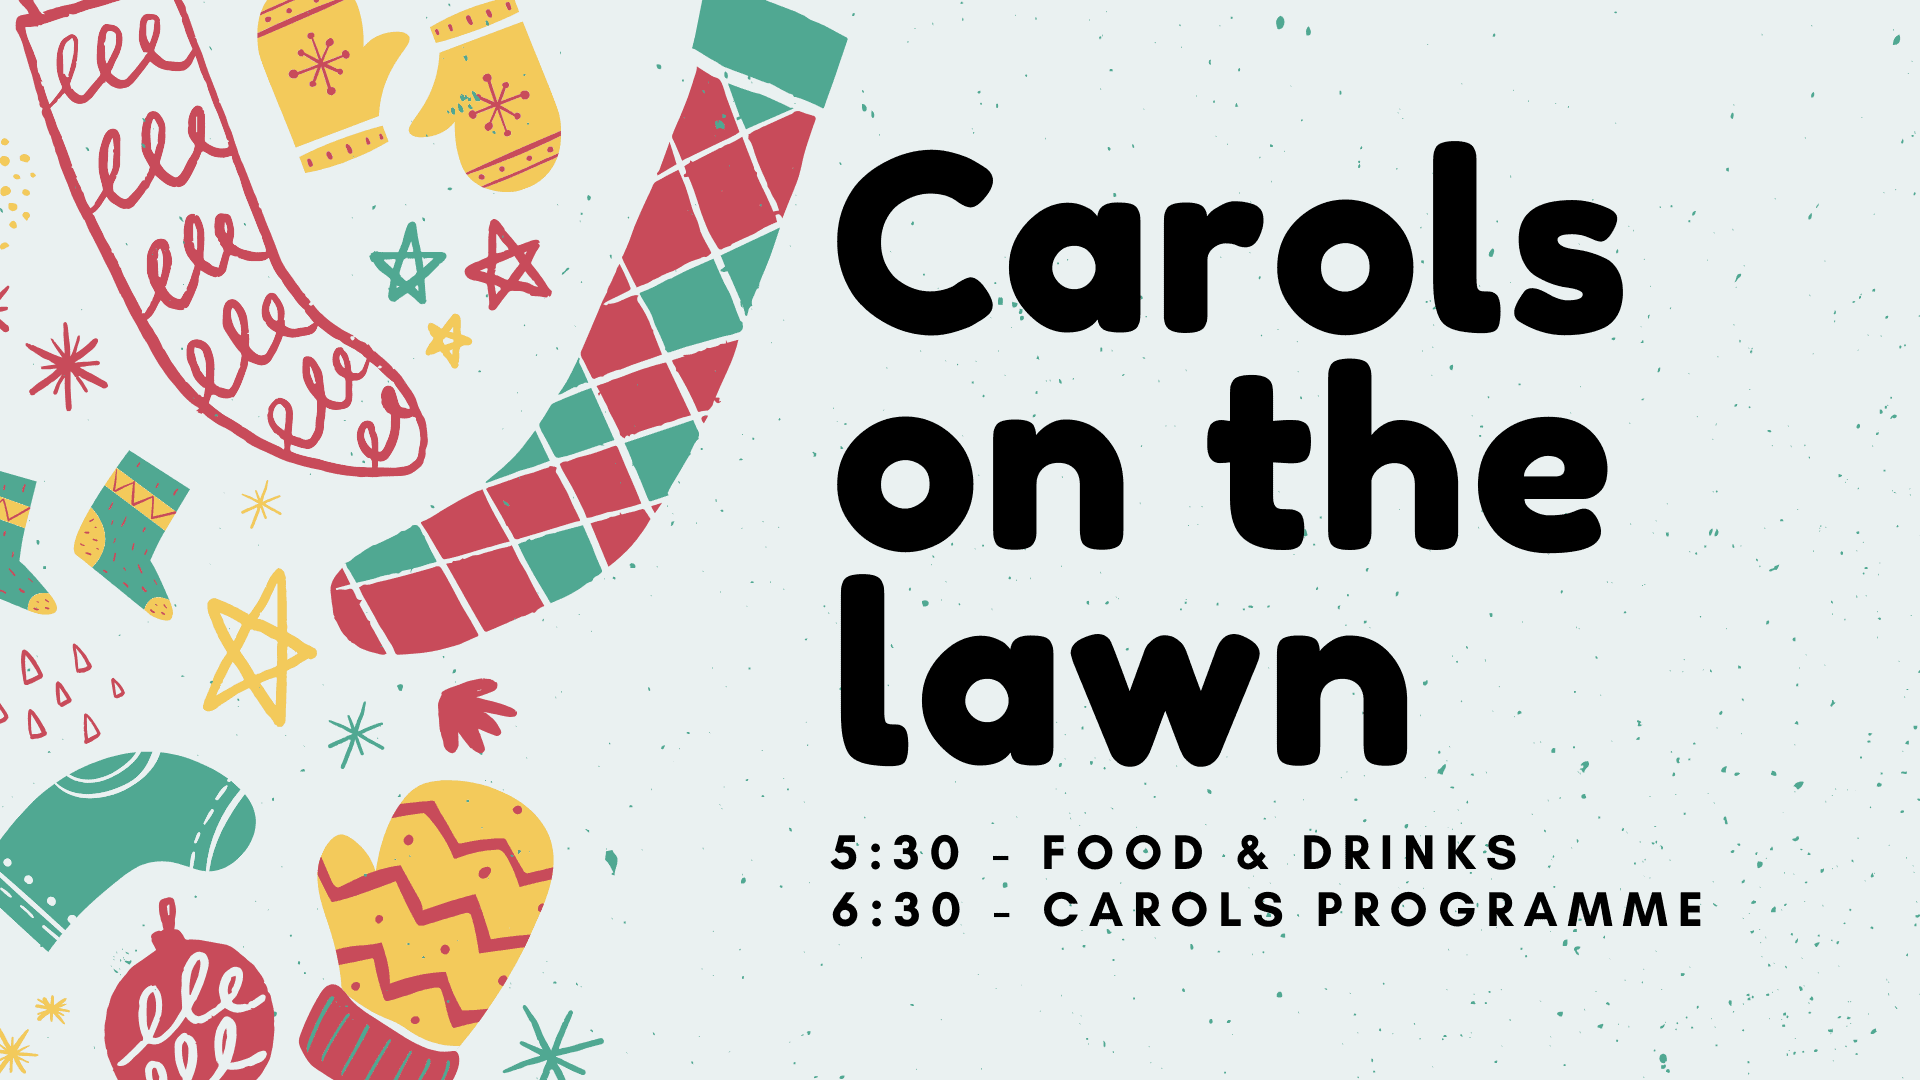 Carols on the Lawn - Sunday Dec 22